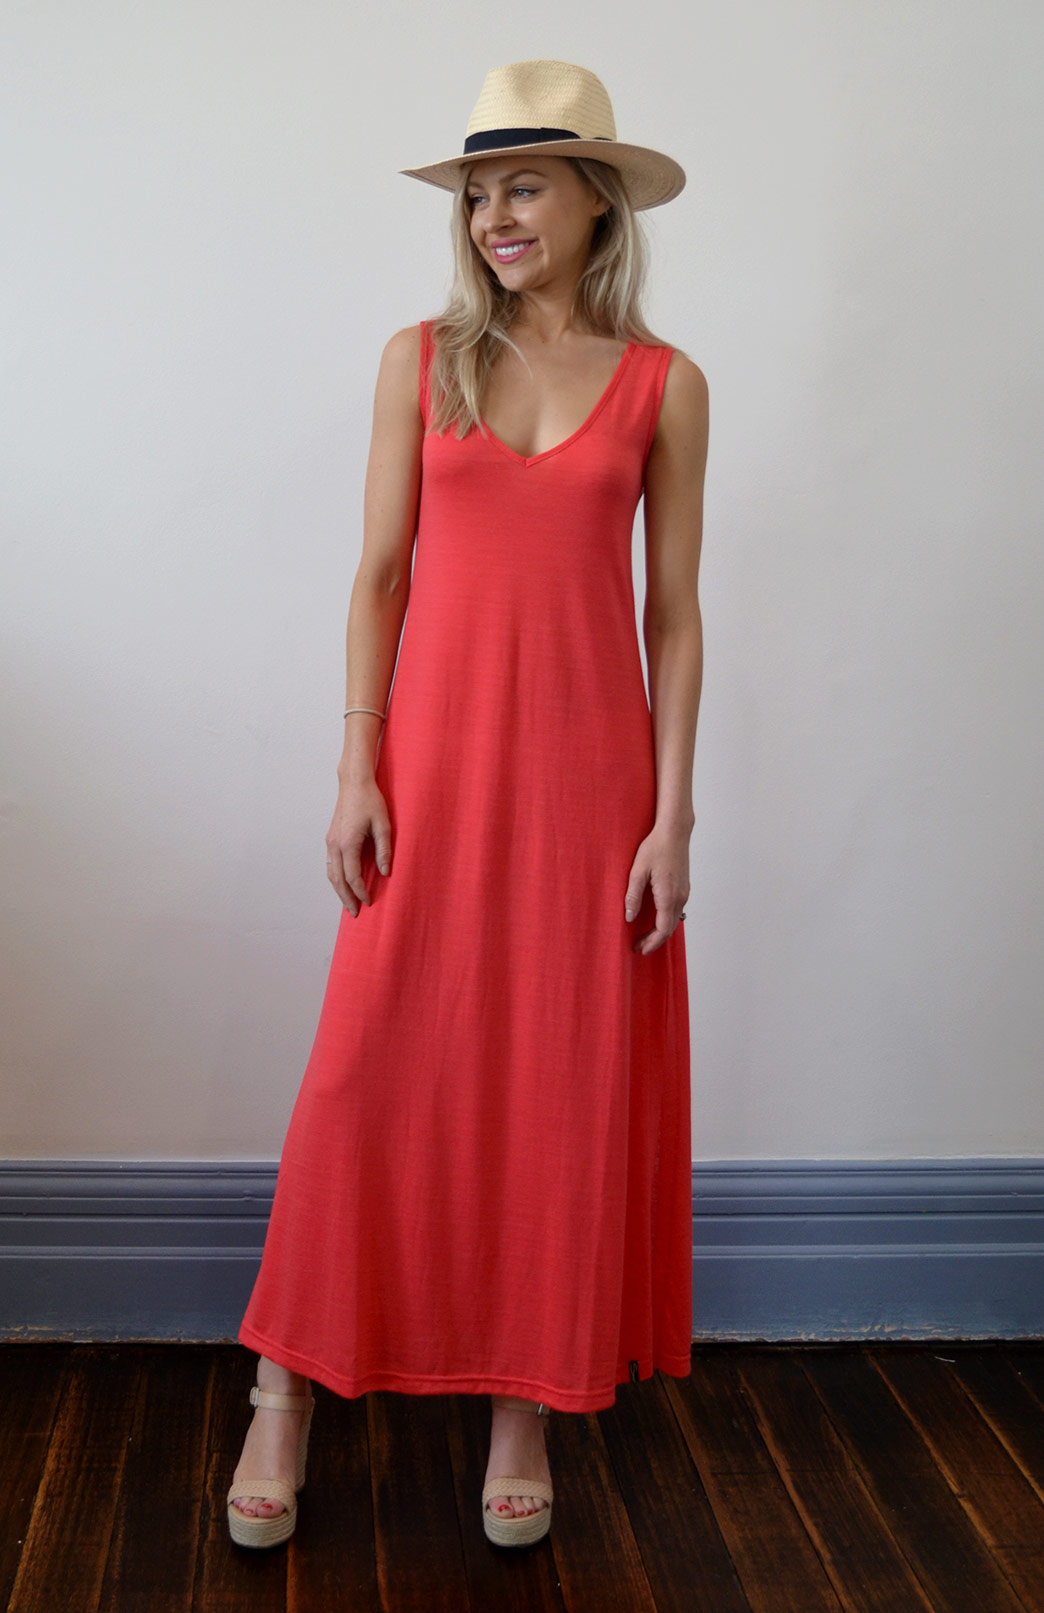 V-Neck Maxi Dress - Women's Hot Coral Merino Wool & Modal Blend V-Neck Sleeveless Maxi Dress with side split - Smitten Merino Tasmania Australia